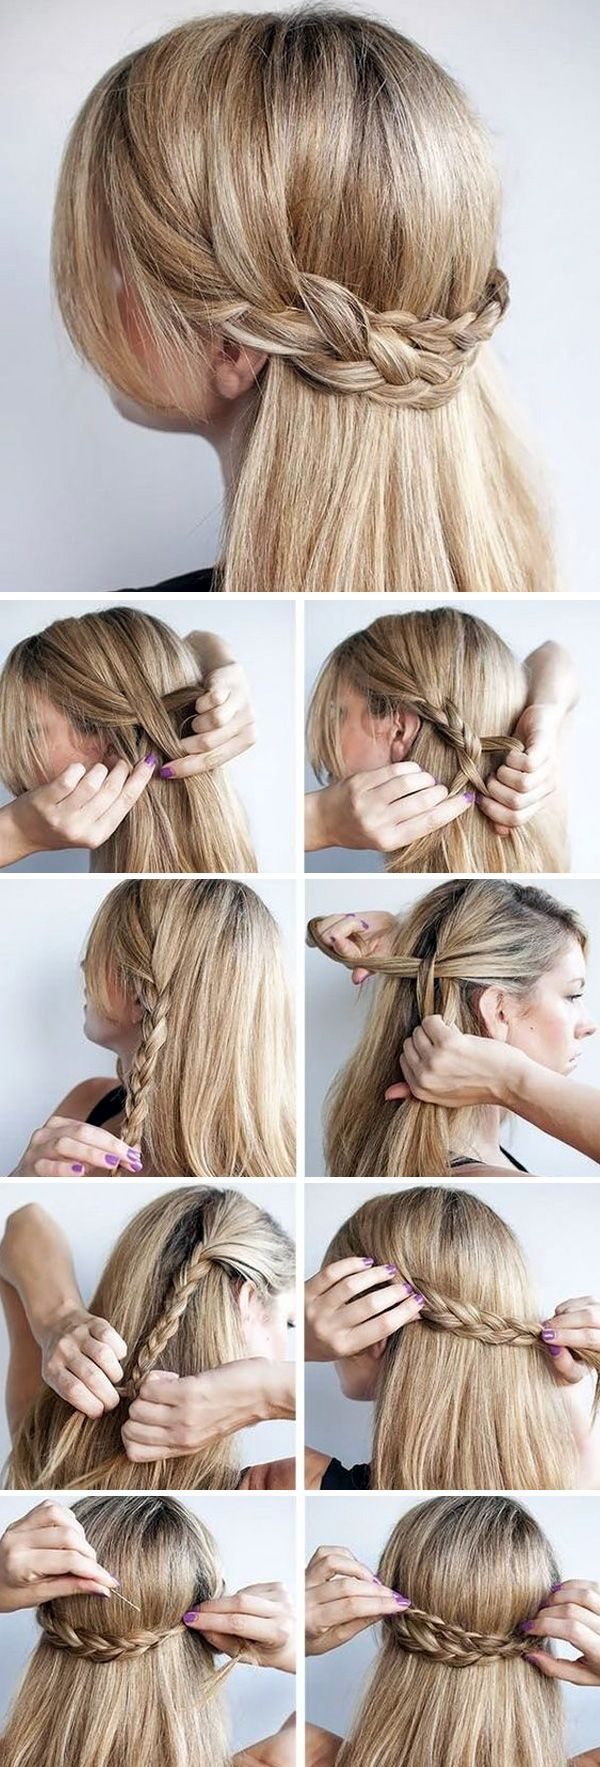 Step by step braided hairstyle construction